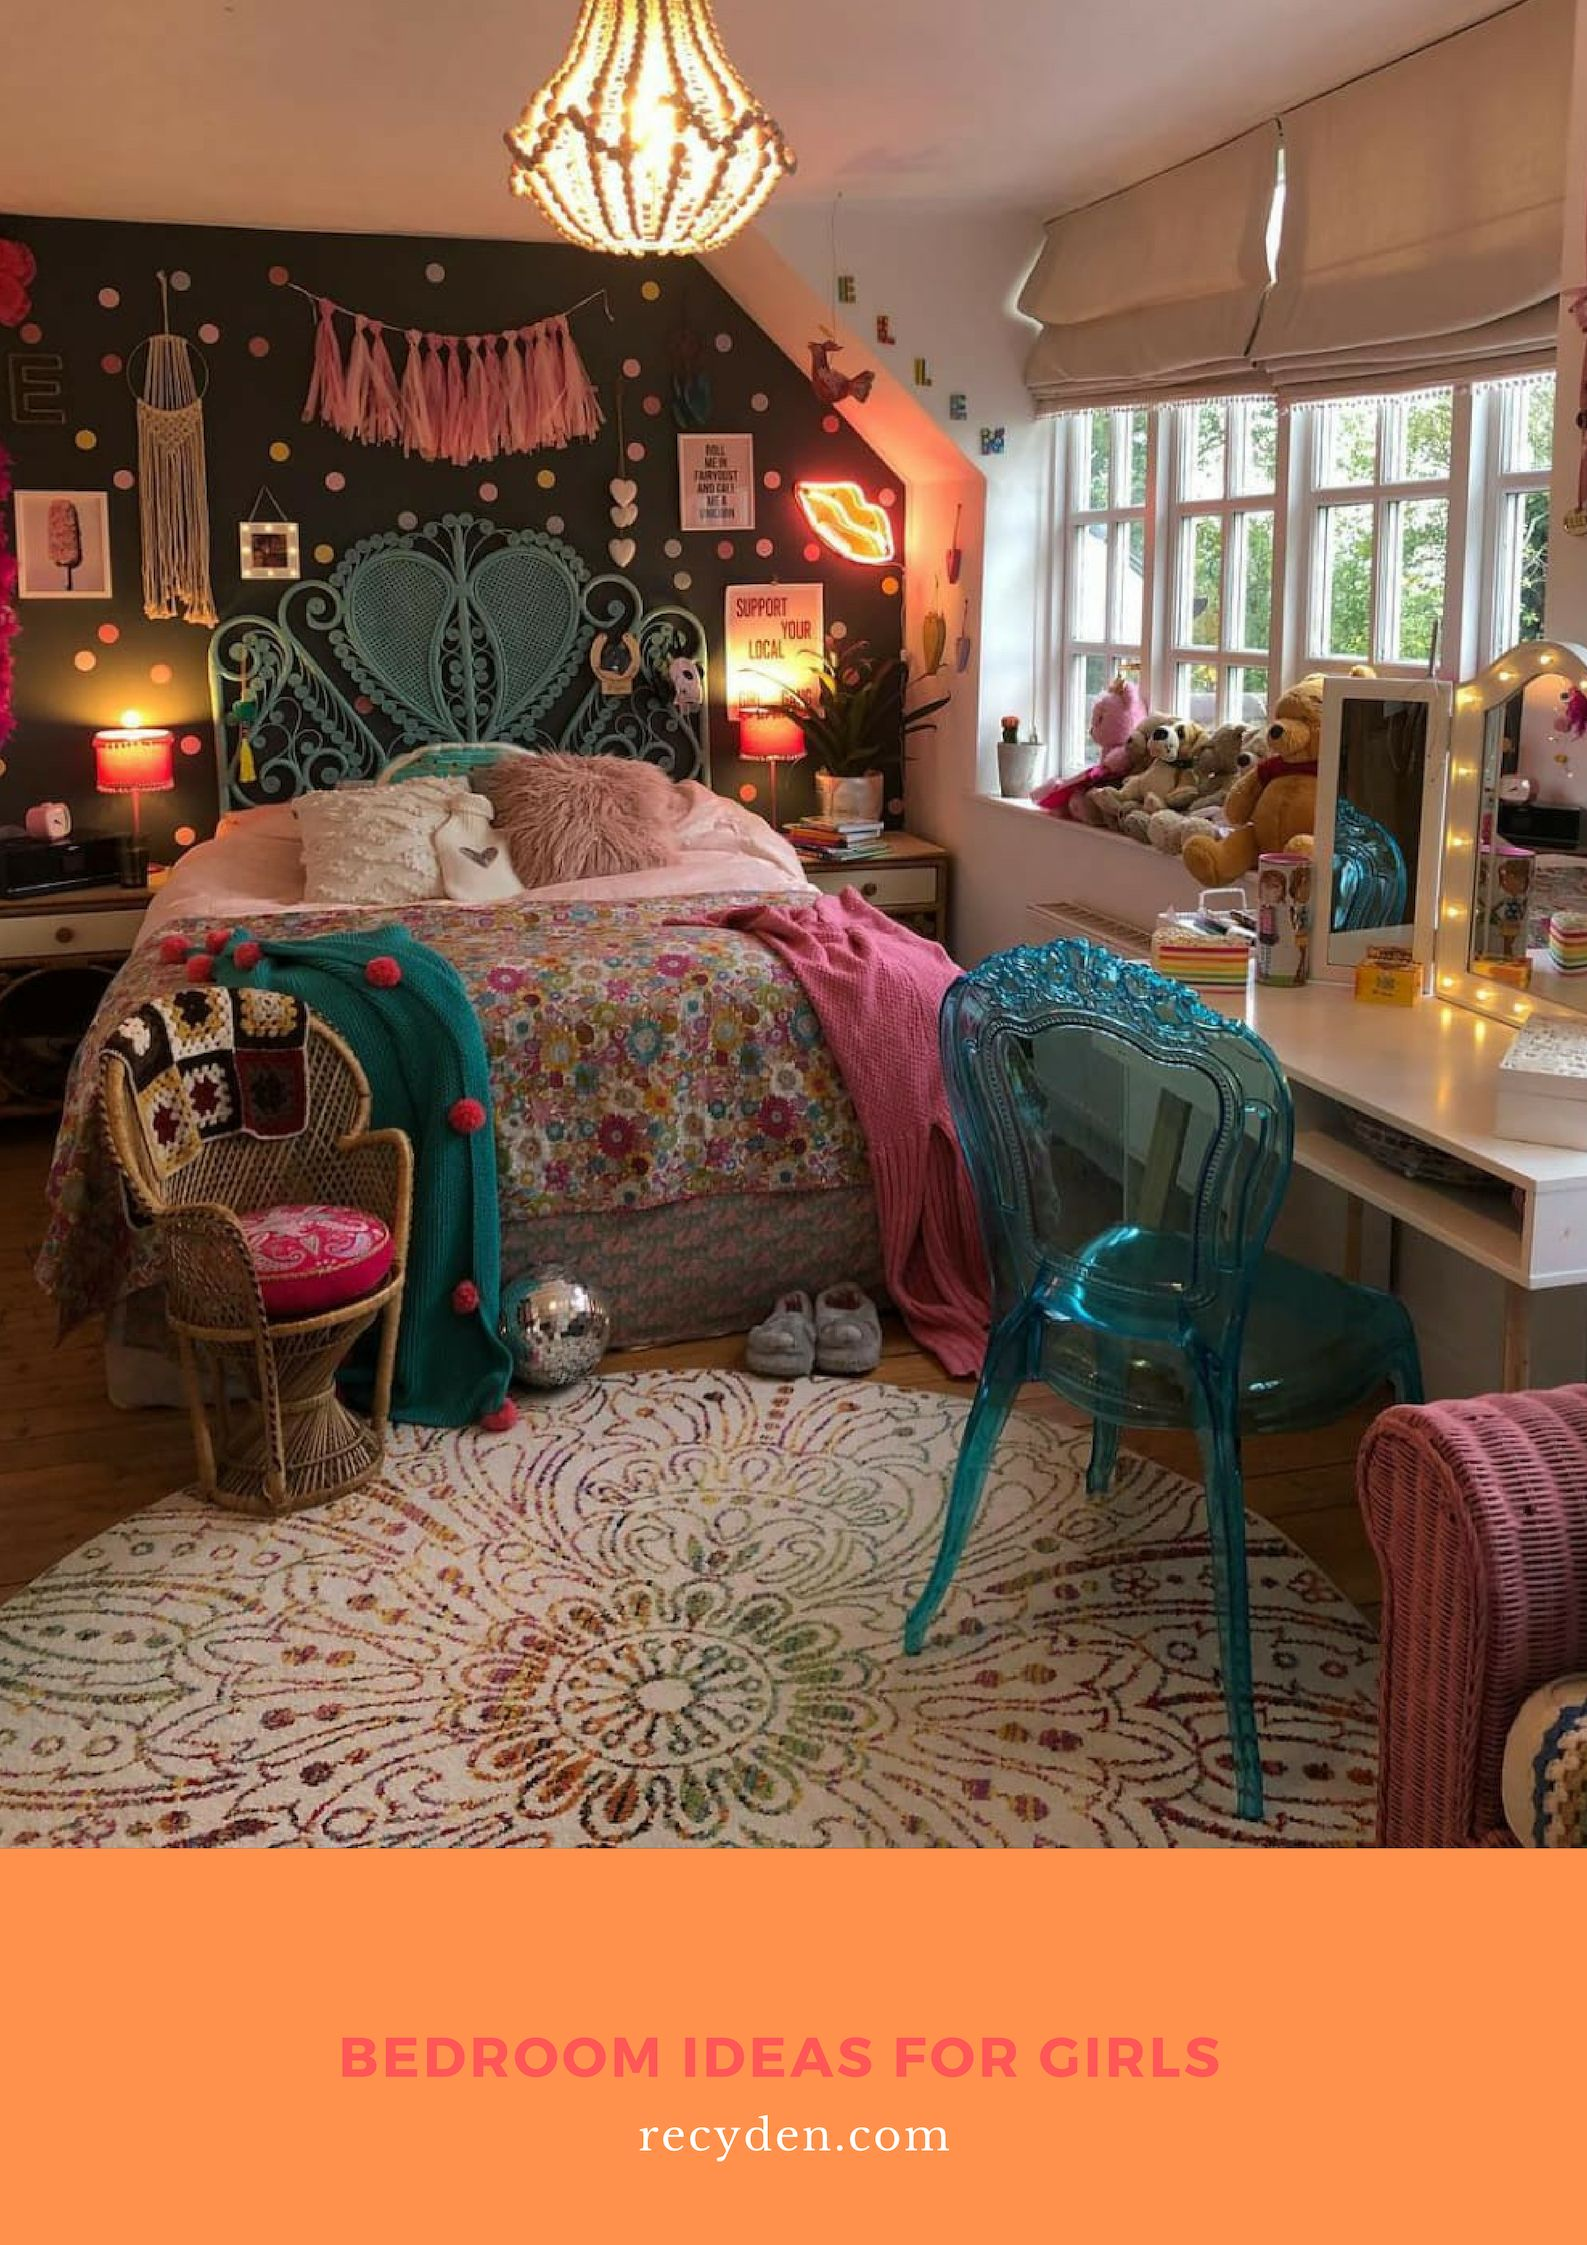 Boho bedroom decor ideas for renovation